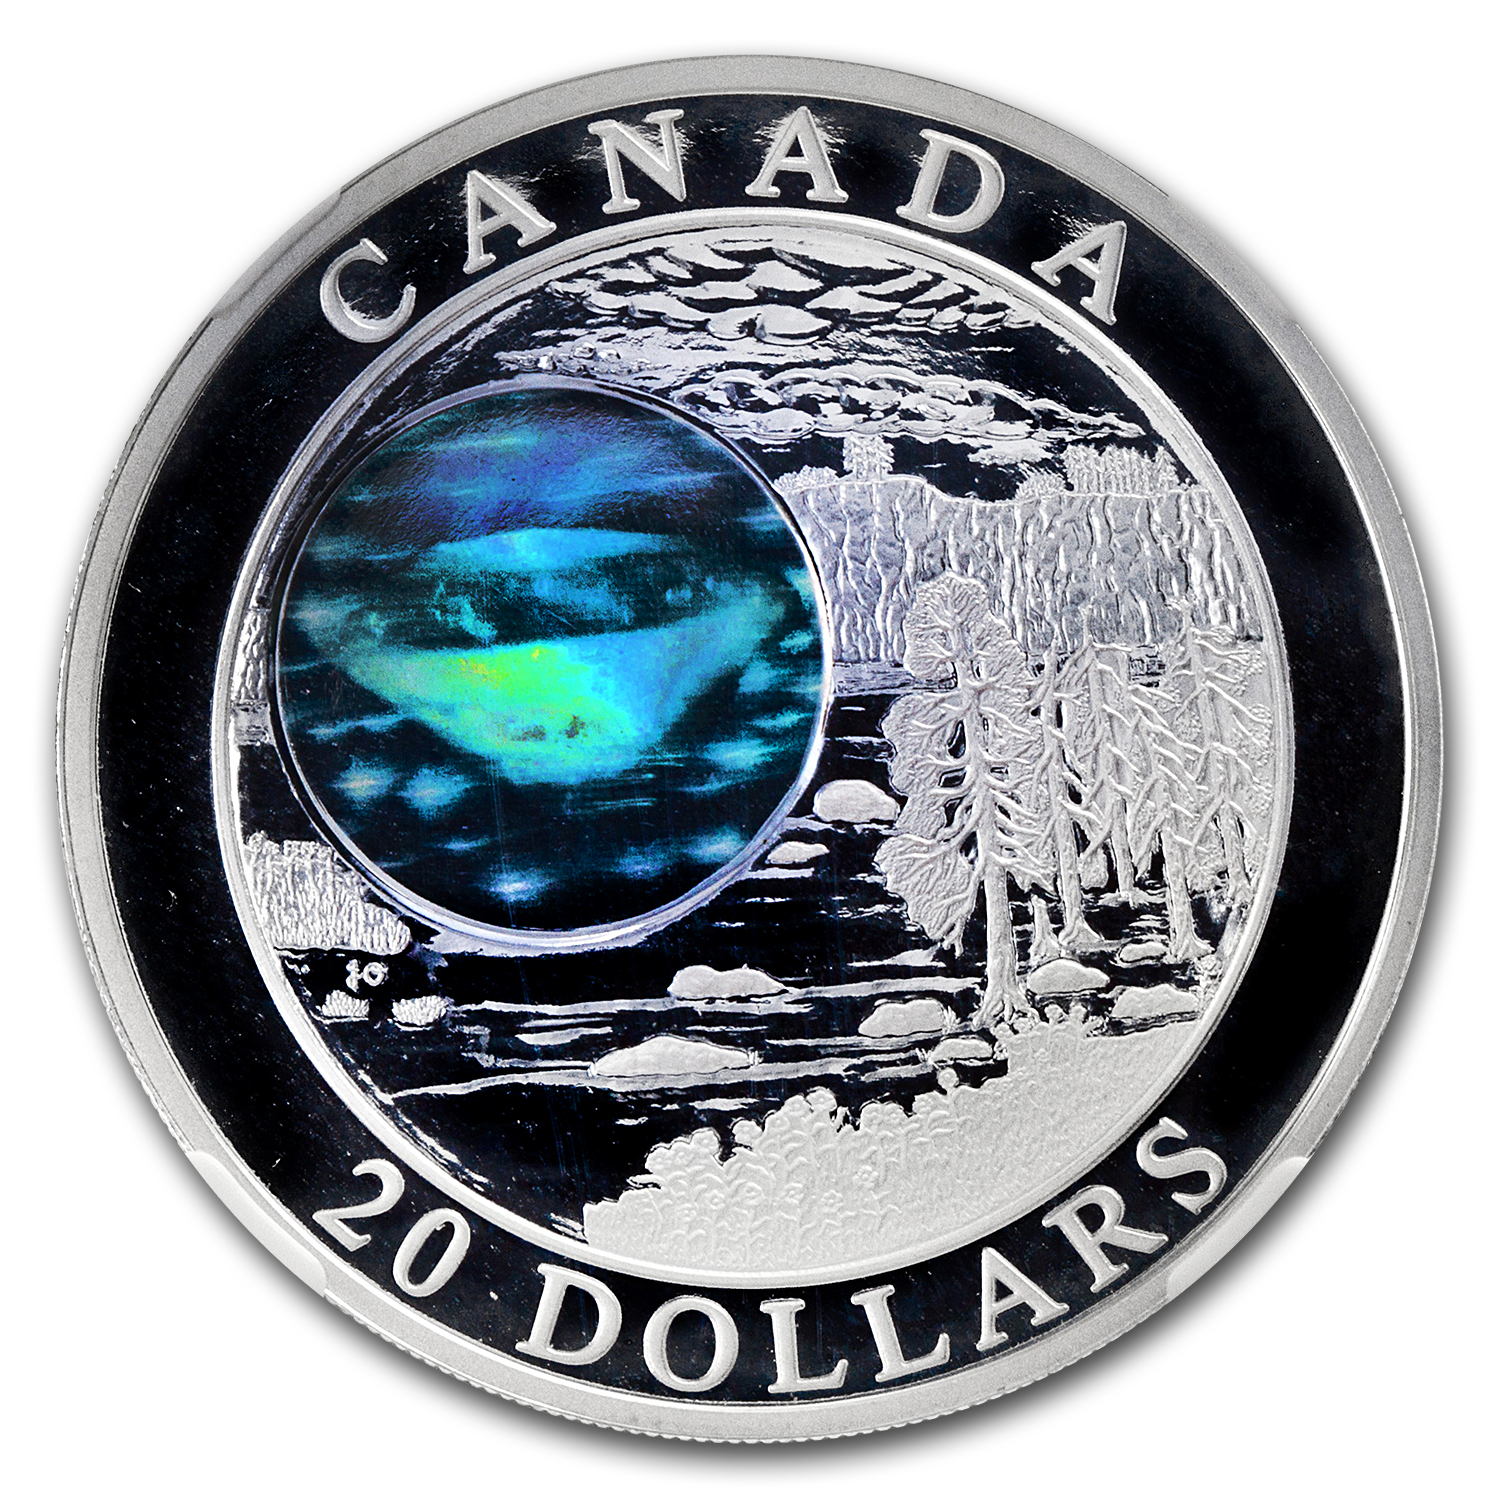 2005 Canada 1 oz Silver $20 Diamonds PF-69 NGC (Hologram)